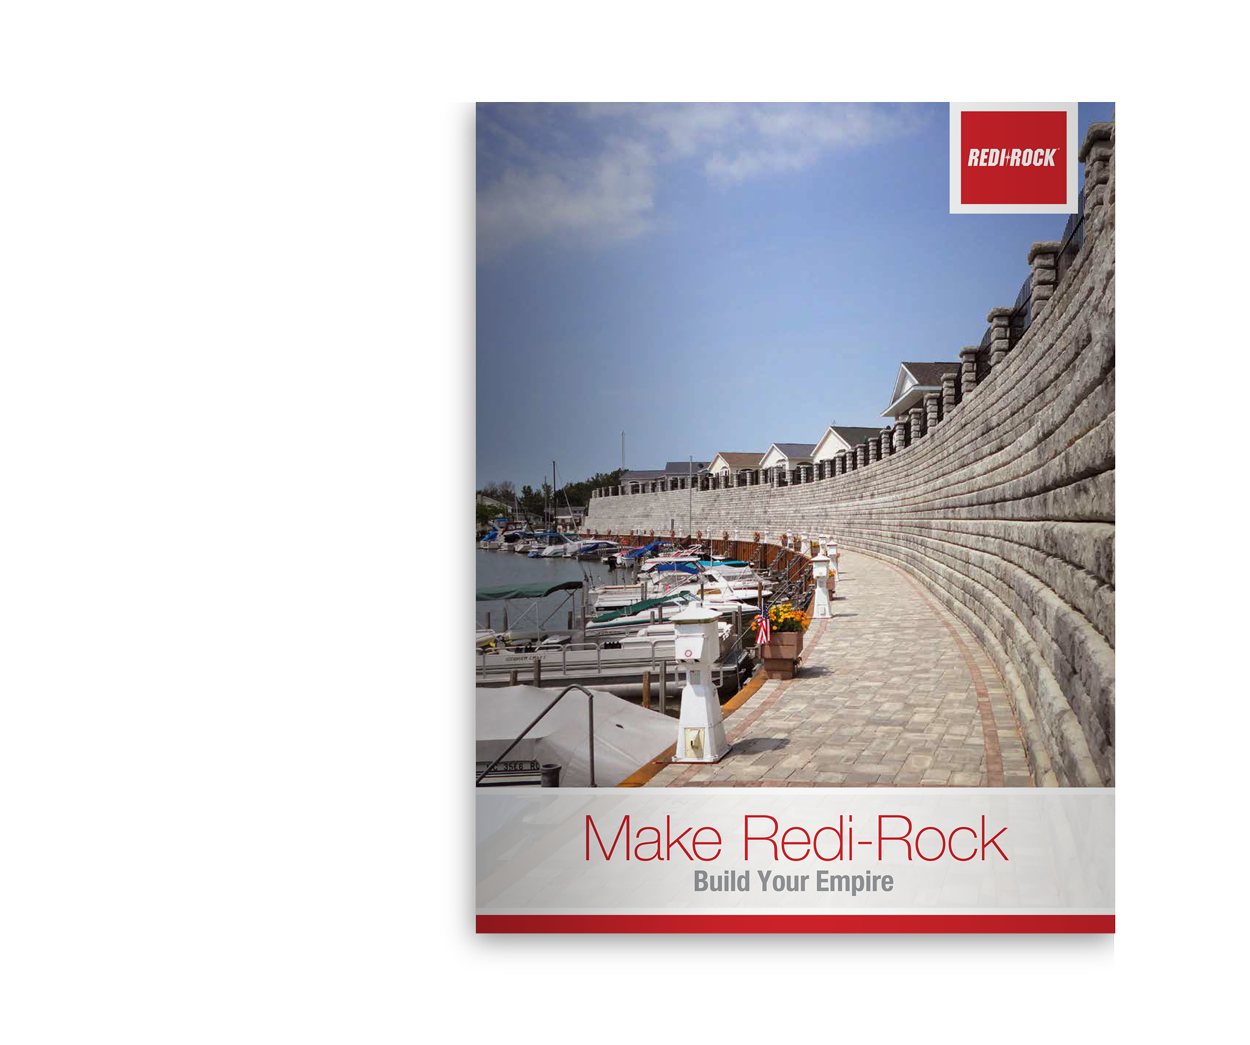 Redi-Rock Business Opportunity Guide